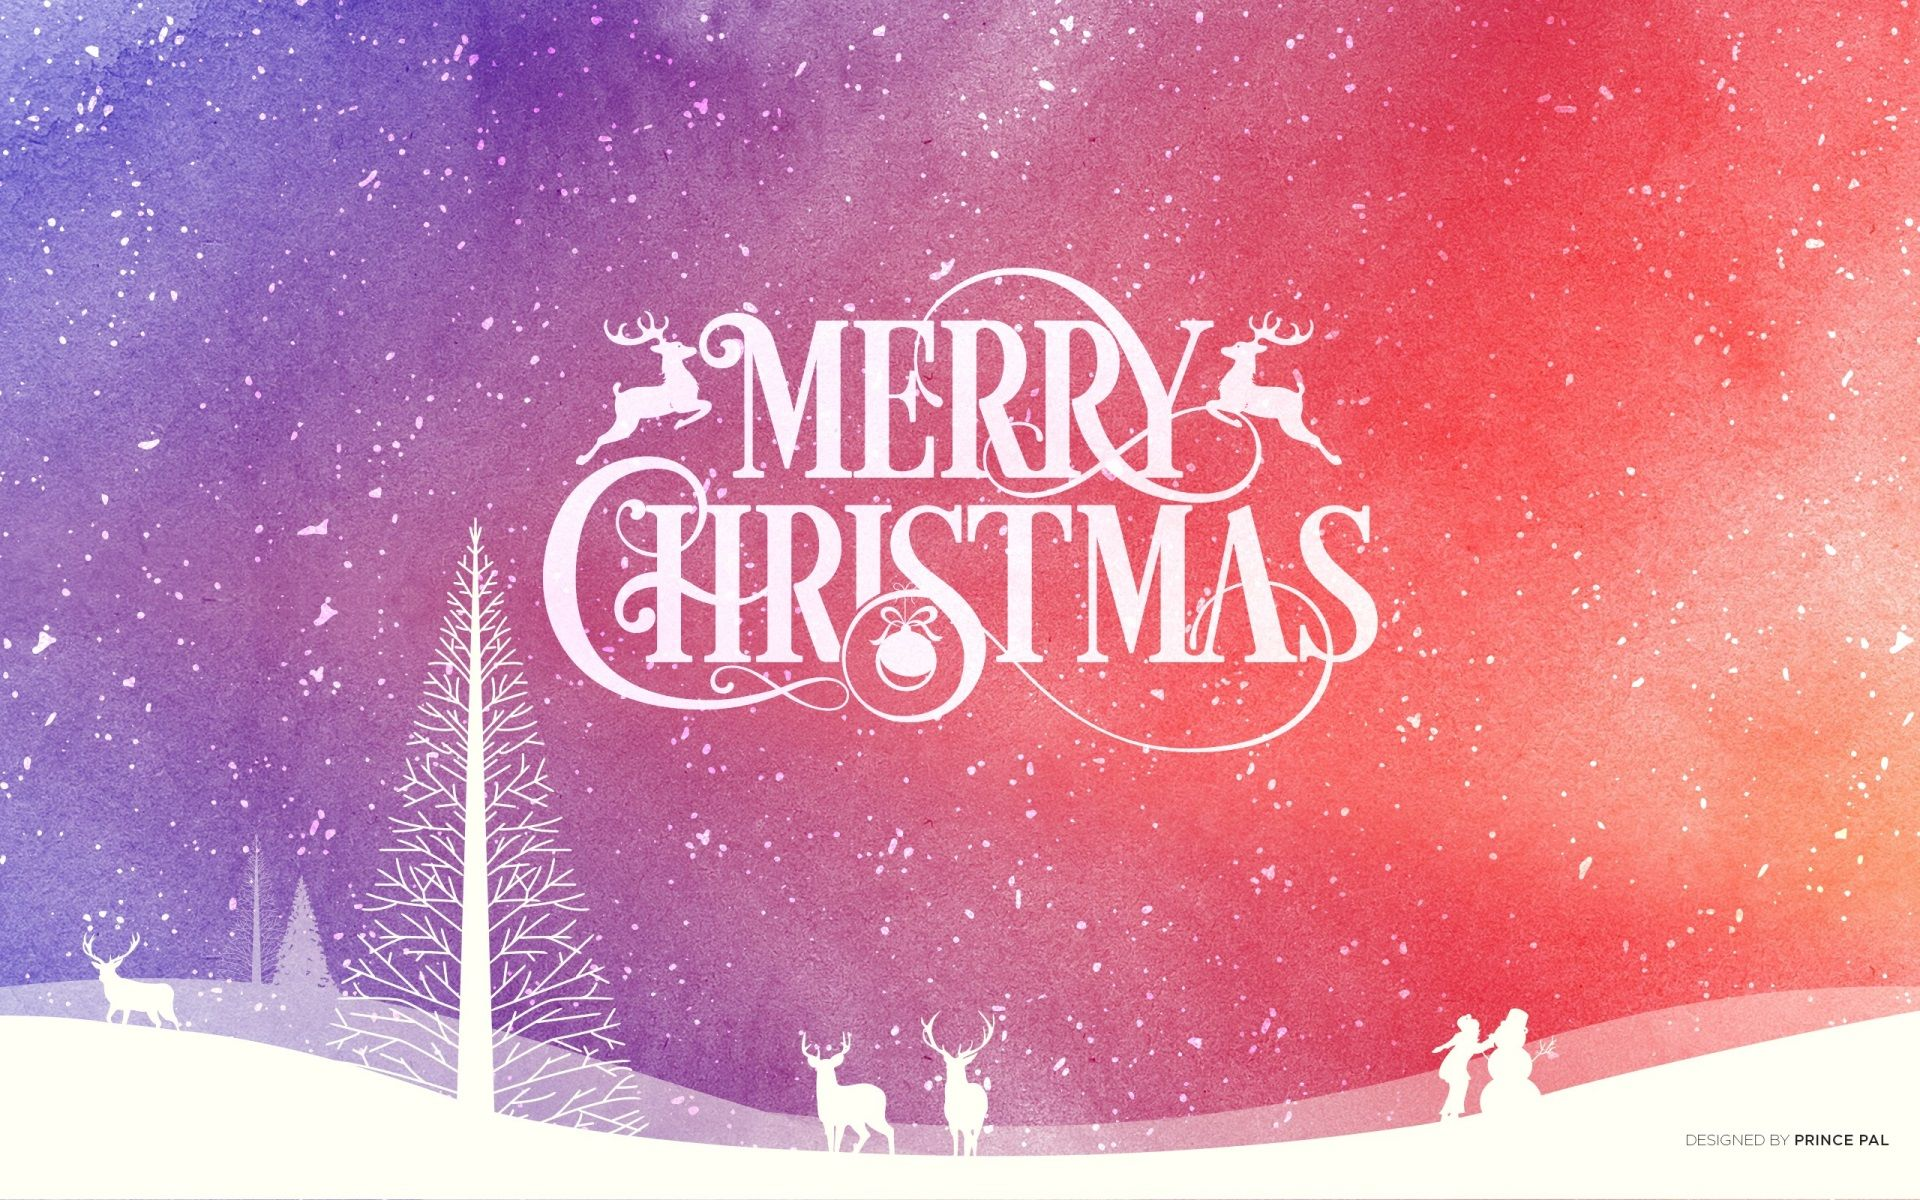 1920x1200 Merry Christmas Wallpaper Pc Background Merry Christmas Wallpaper Merry Christmas Wishes Text Merry Christmas Quotes